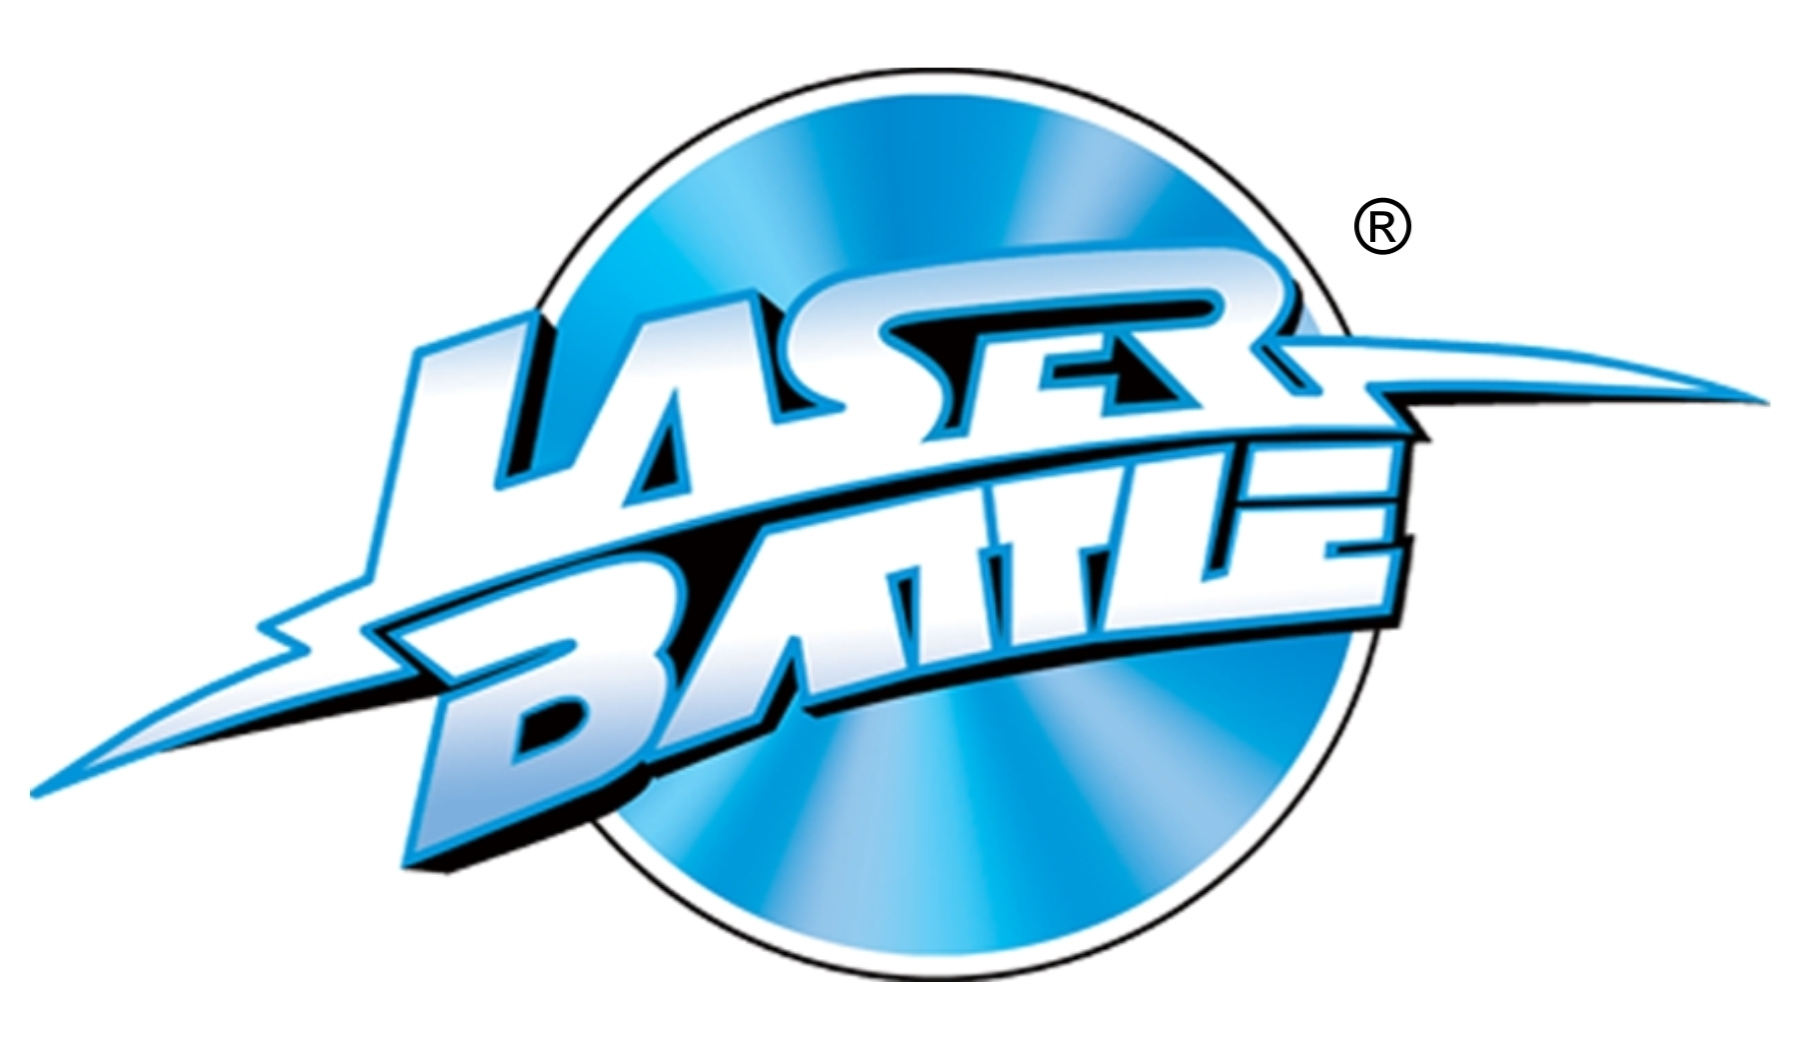 Picture of Laser Battle KL - 2 Games (Monday-Thursday)